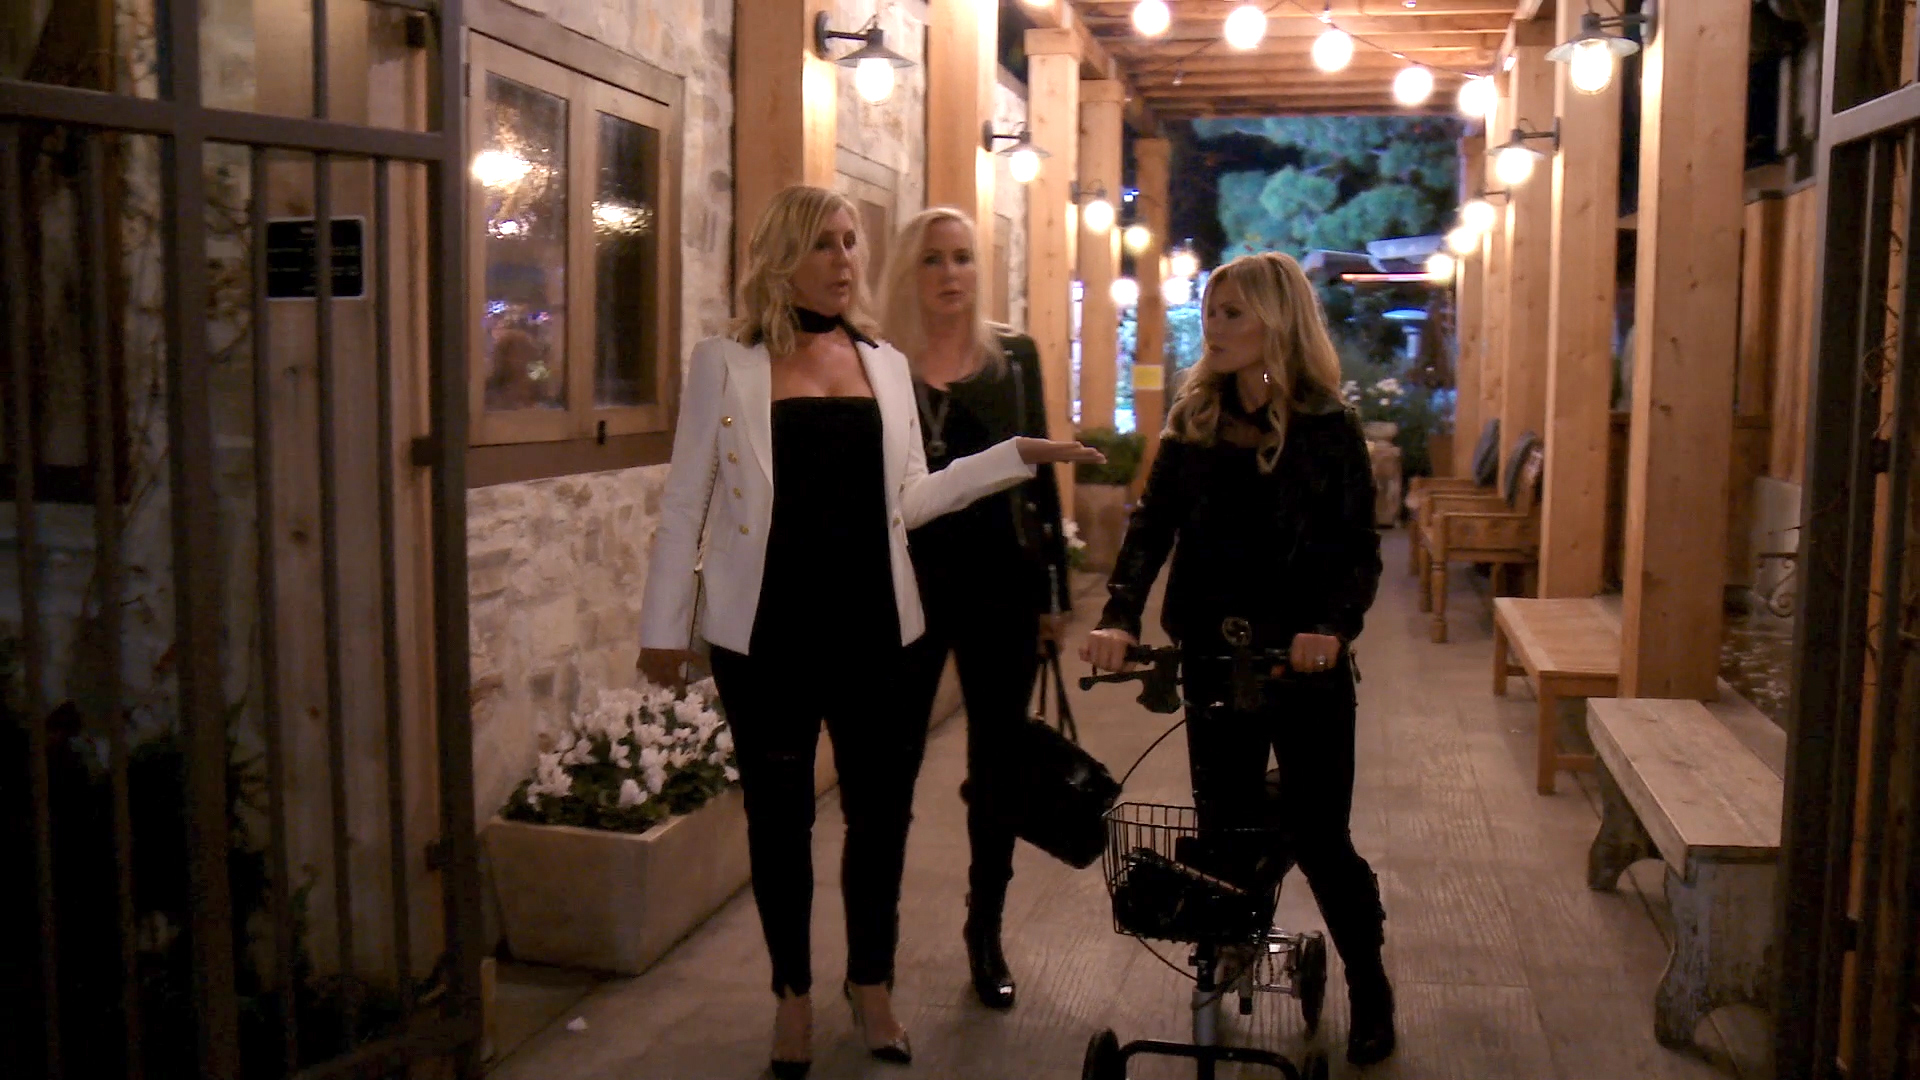 Vicki Gunvalson, Tamra Judge, and Shannon Beador Have a Signature Dance